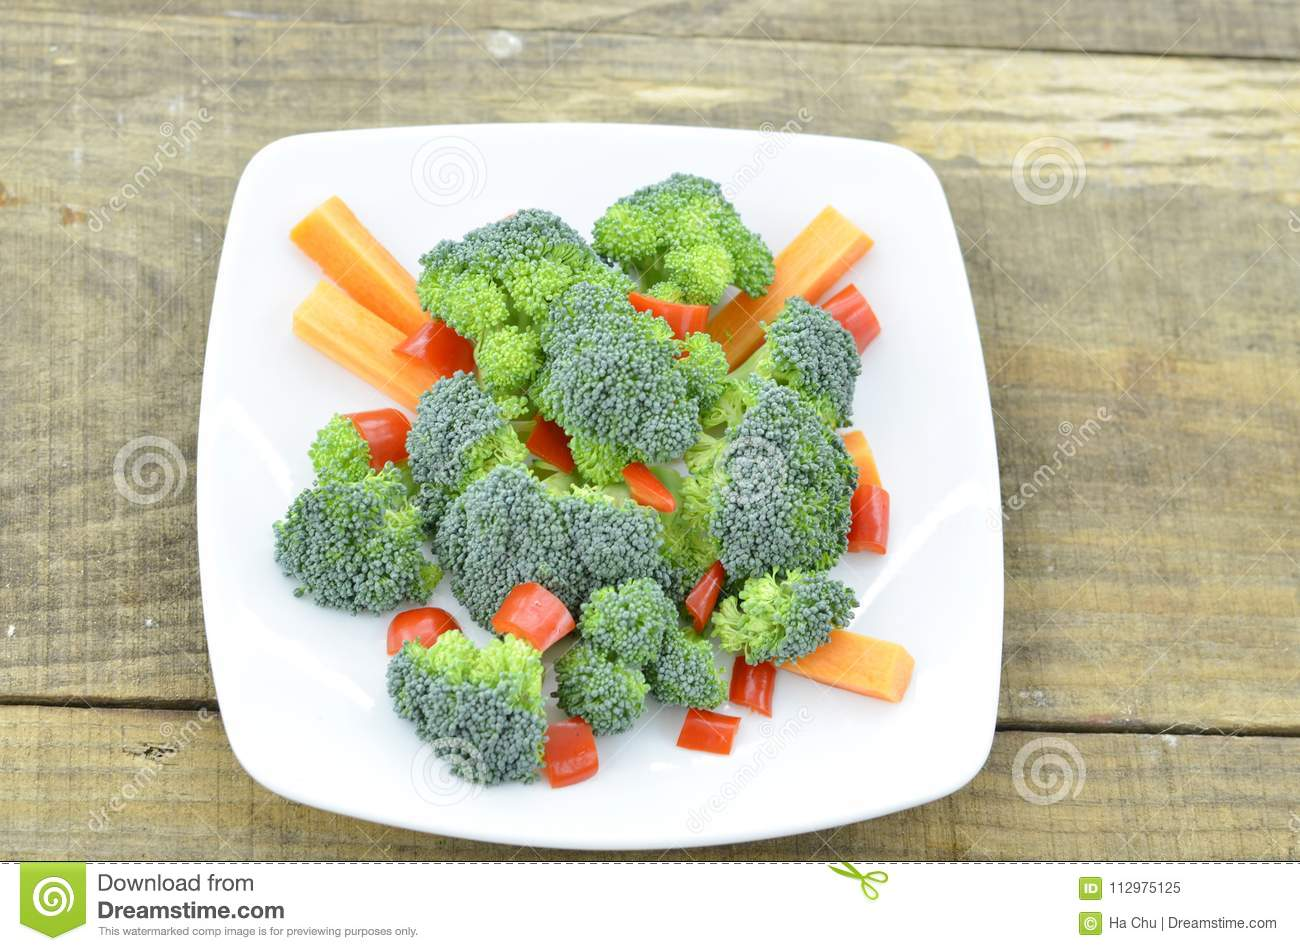 White plate with fresh vegetables on wooden background